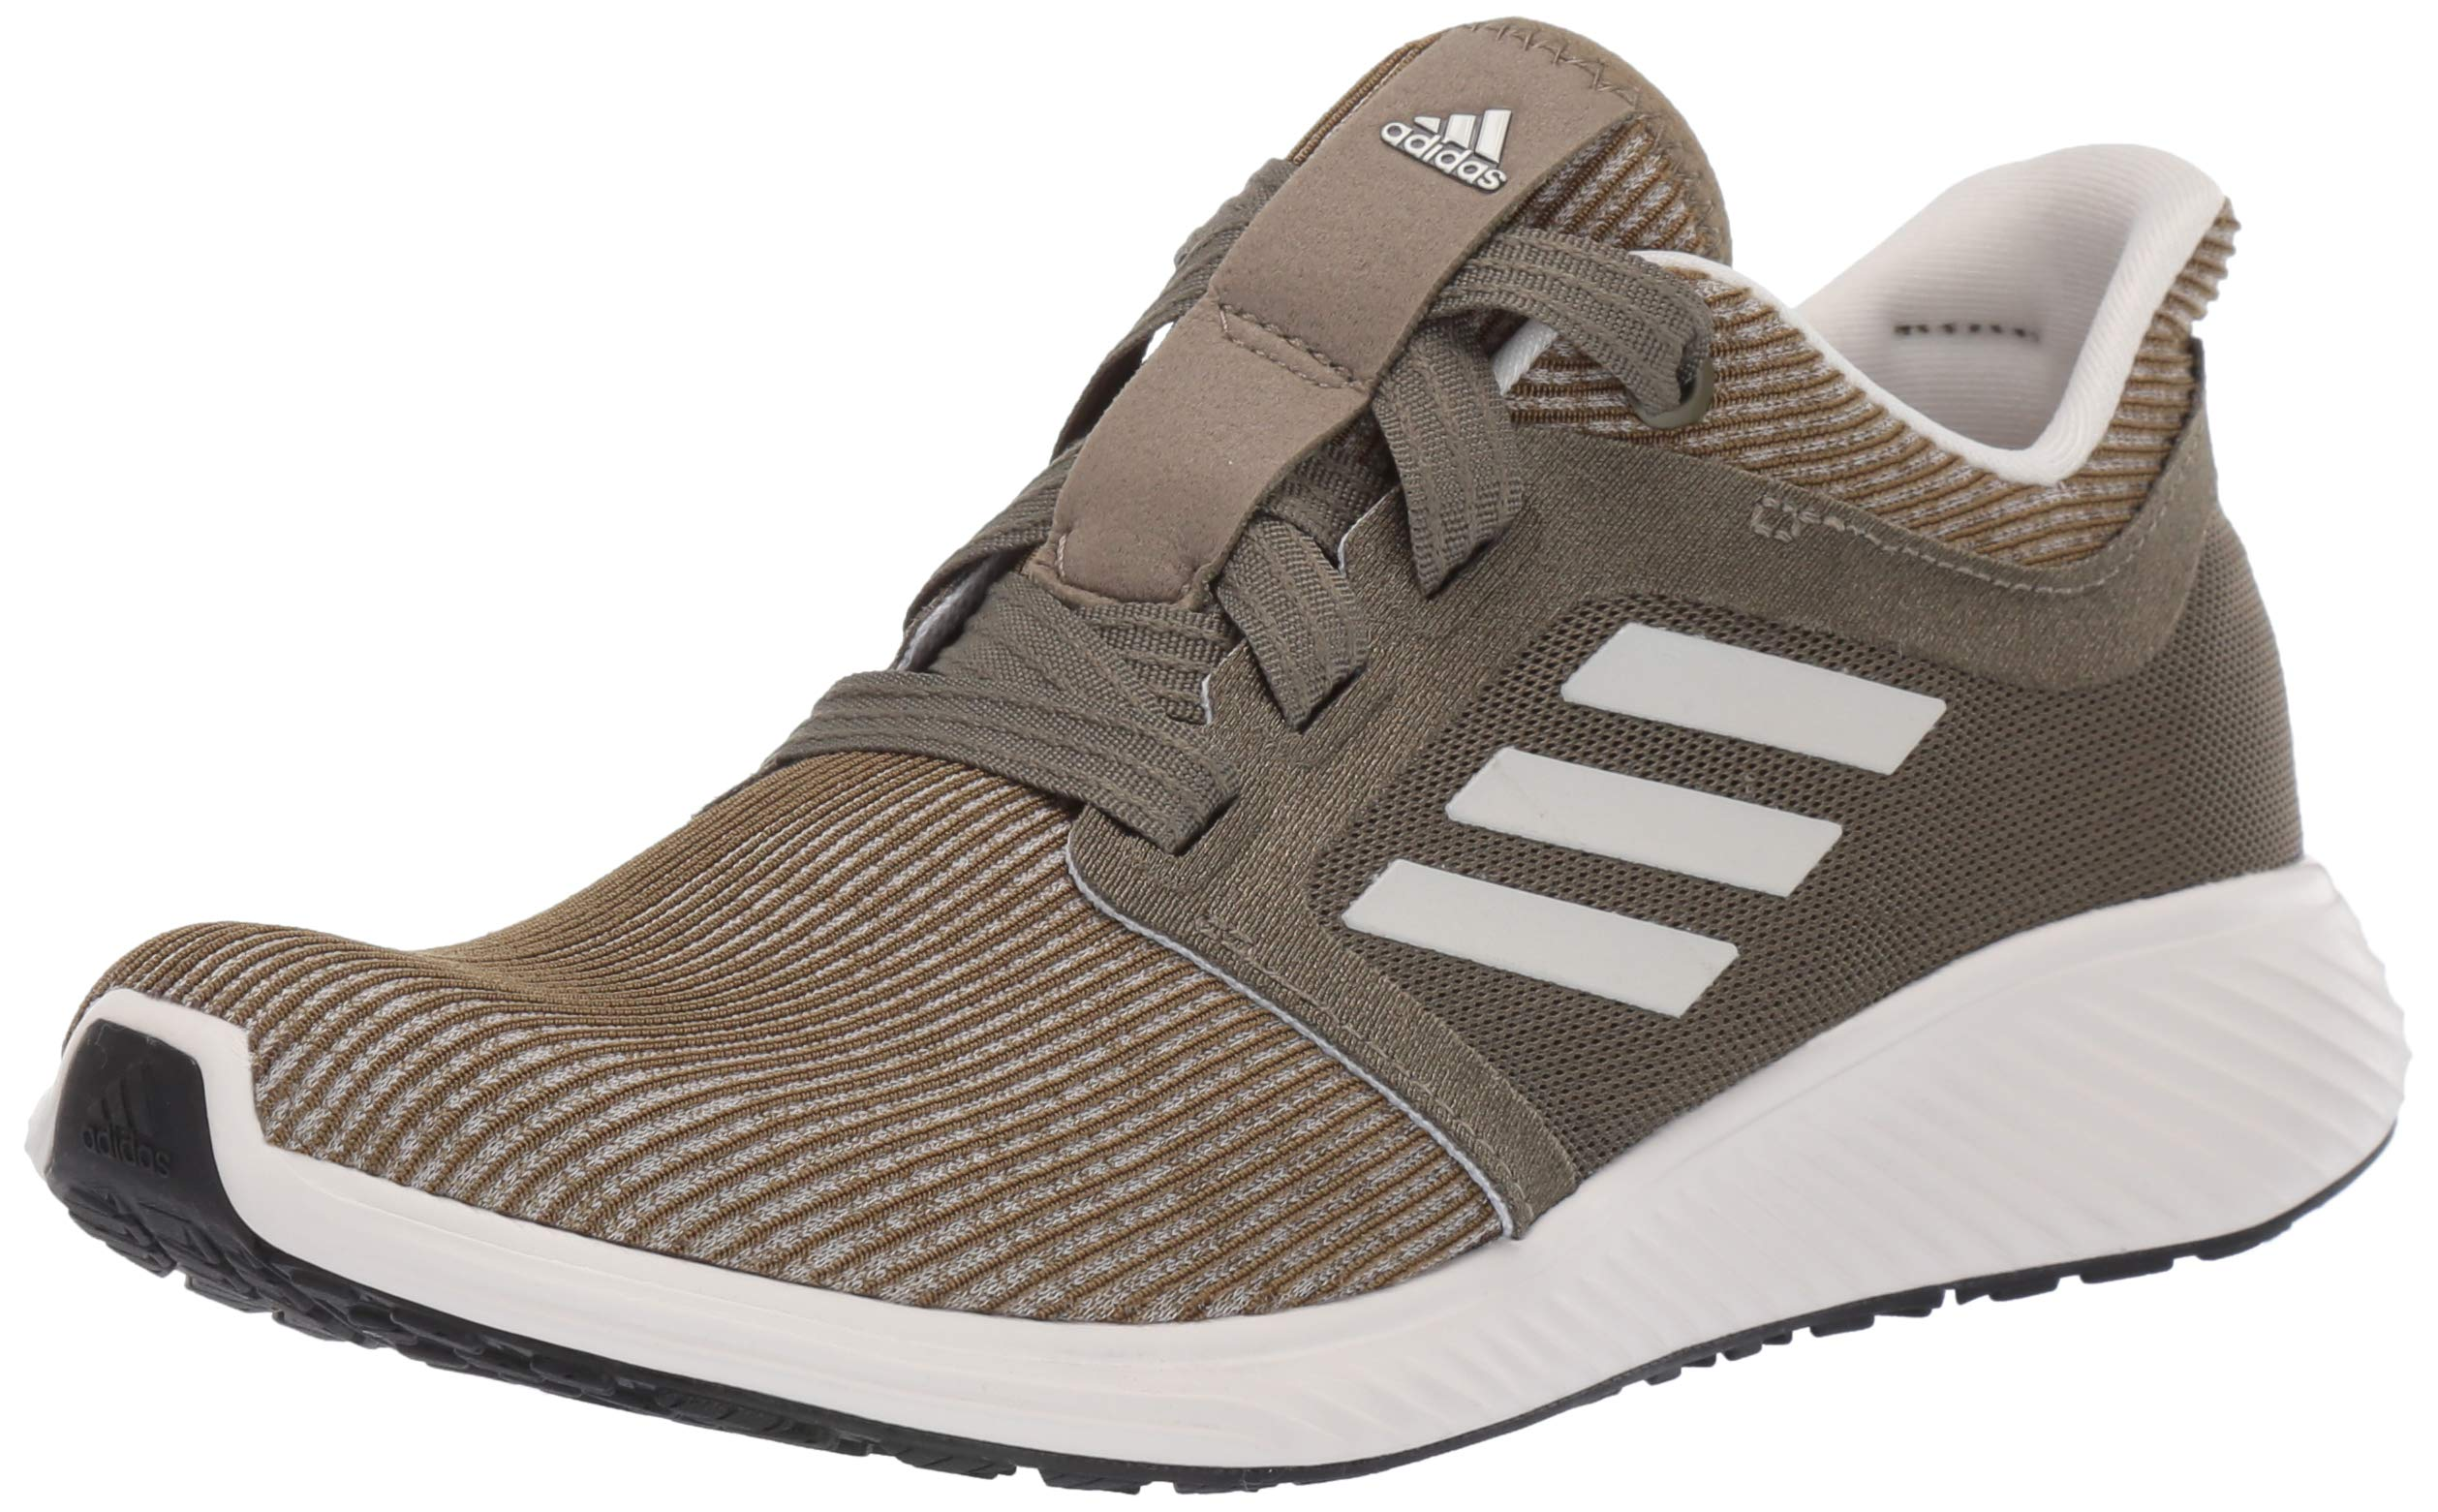 adidas Women's Edge Lux 3, Khaki/raw White/Yellow, 5.5 M US